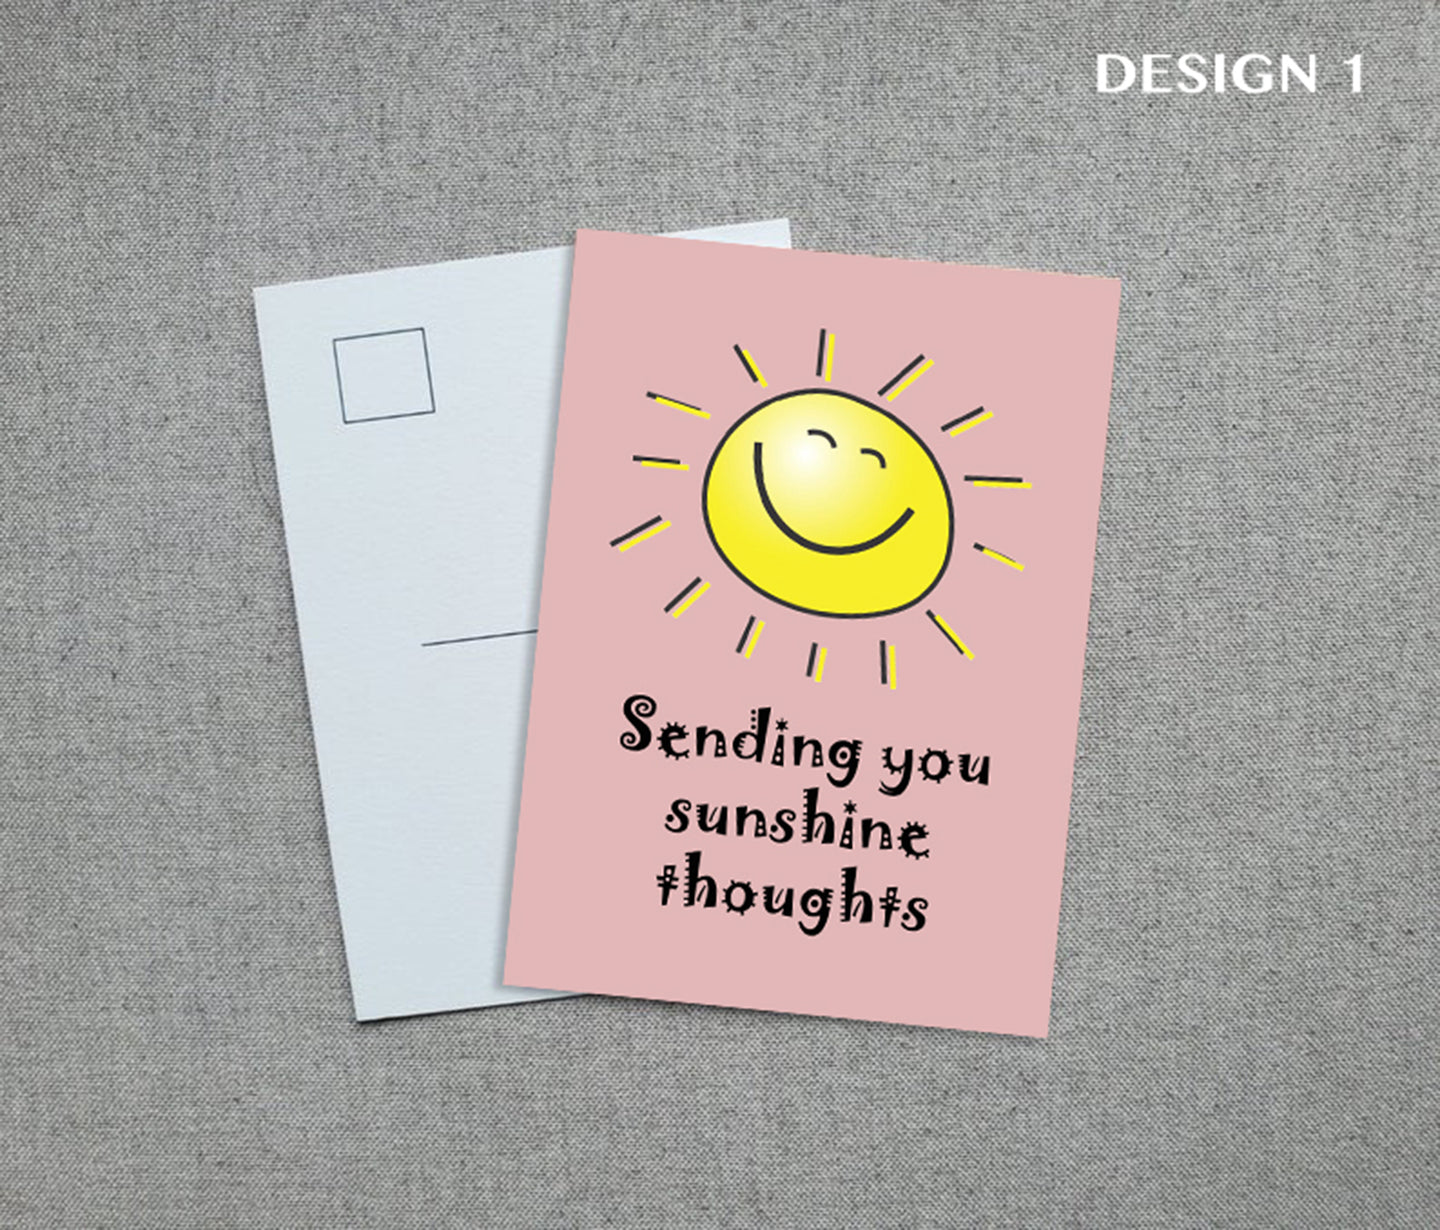 x10 Thinking Of You Postcards, Friendship Cards, Miss You Cards, Postcards